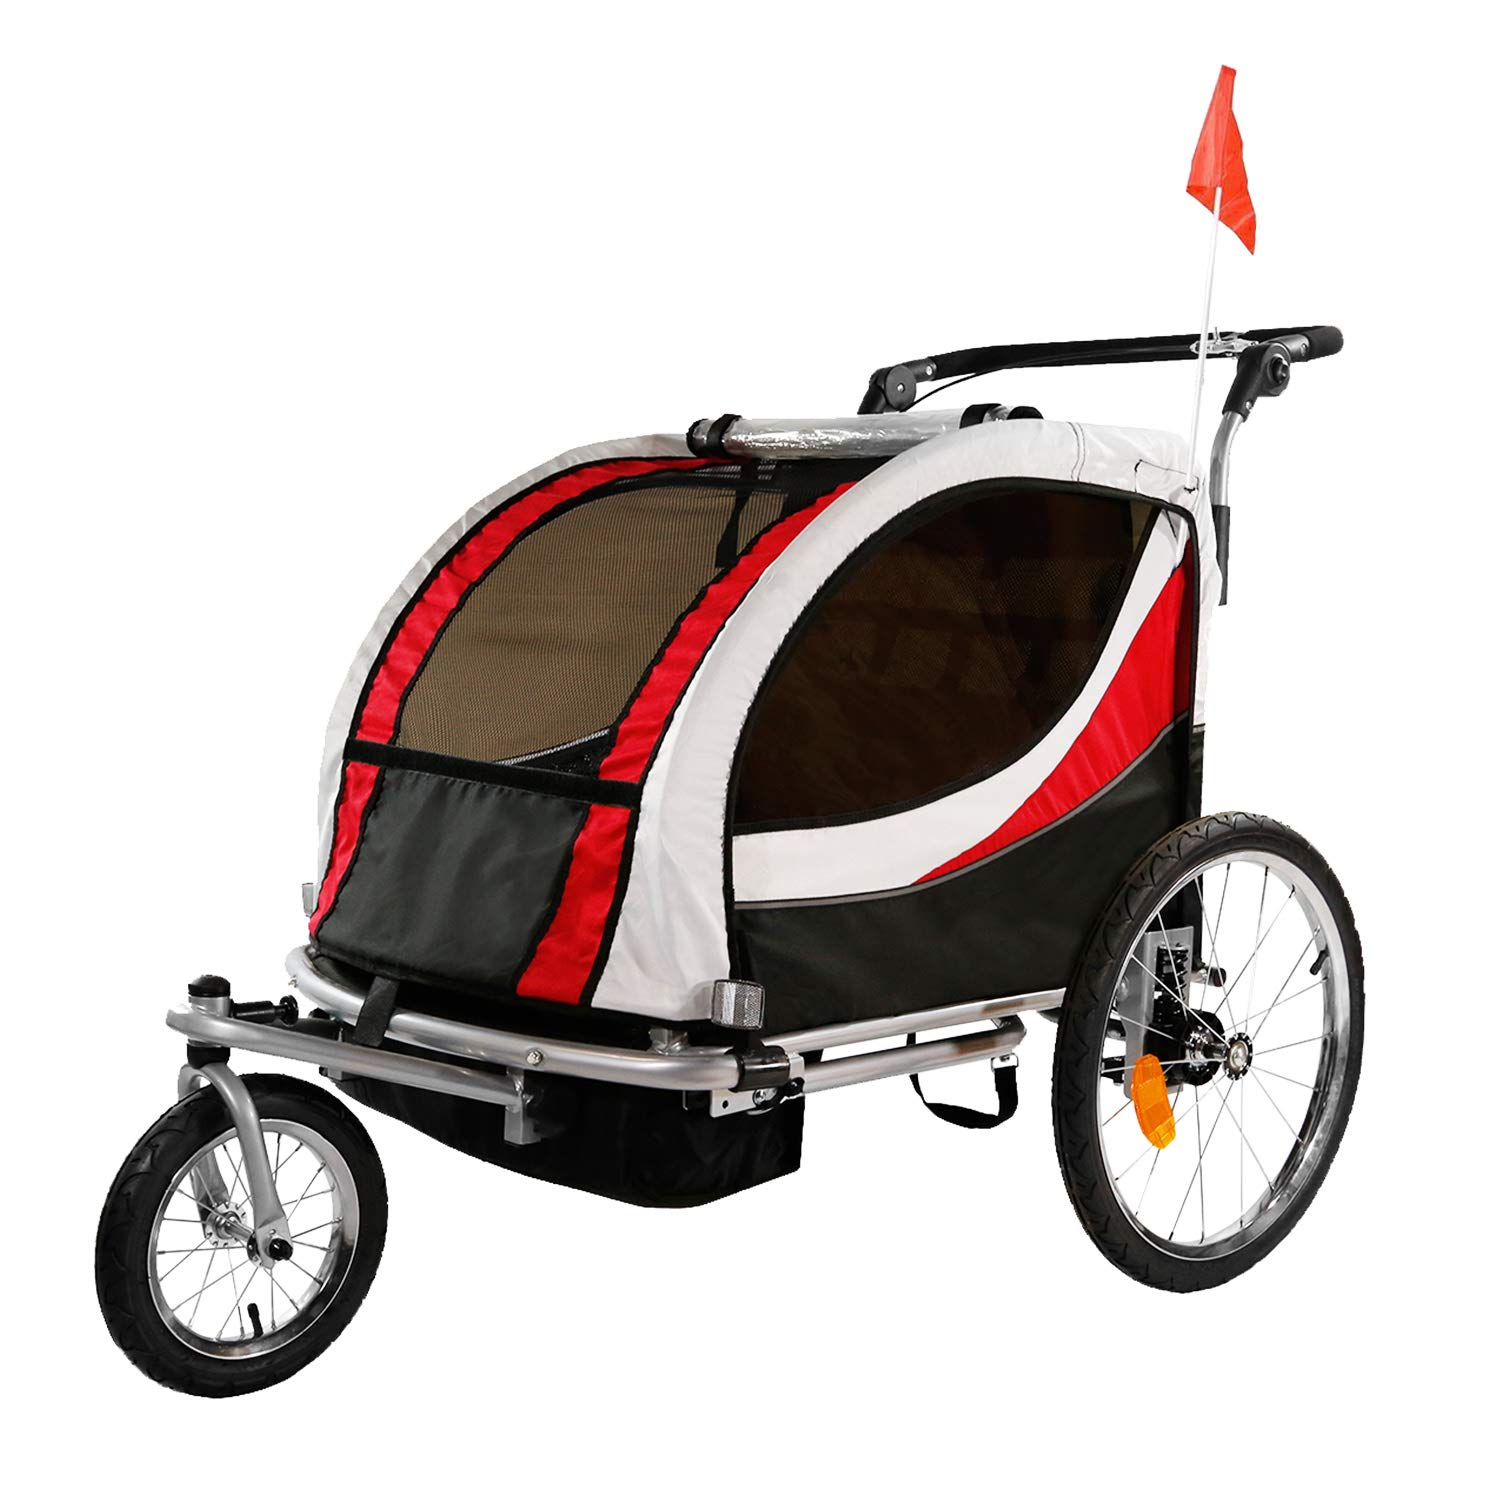 Clevr 3-in-1 Double 2 Seat Bicycle Bike Trailer Jogger Stroller for Kids Children | Foldable Collapsible w/Pivot Front Wheel, Red by Clevr